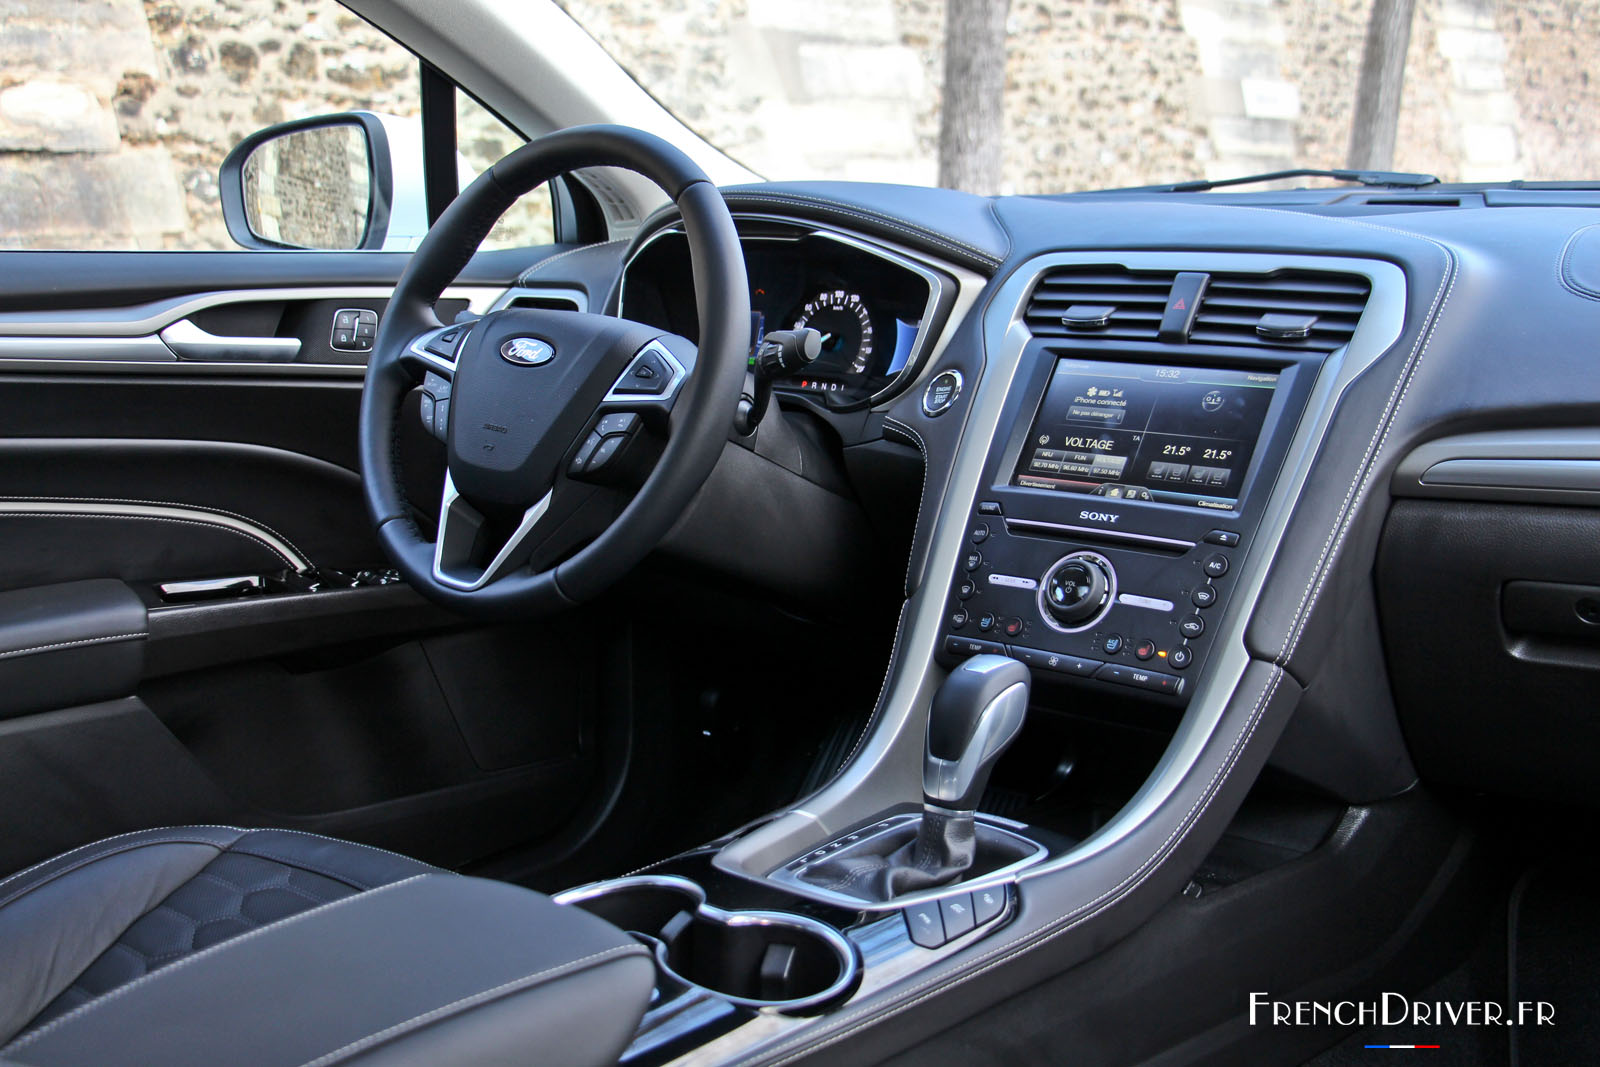 essai de la ford mondeo vignale hybrid routi re des villes french driver. Black Bedroom Furniture Sets. Home Design Ideas